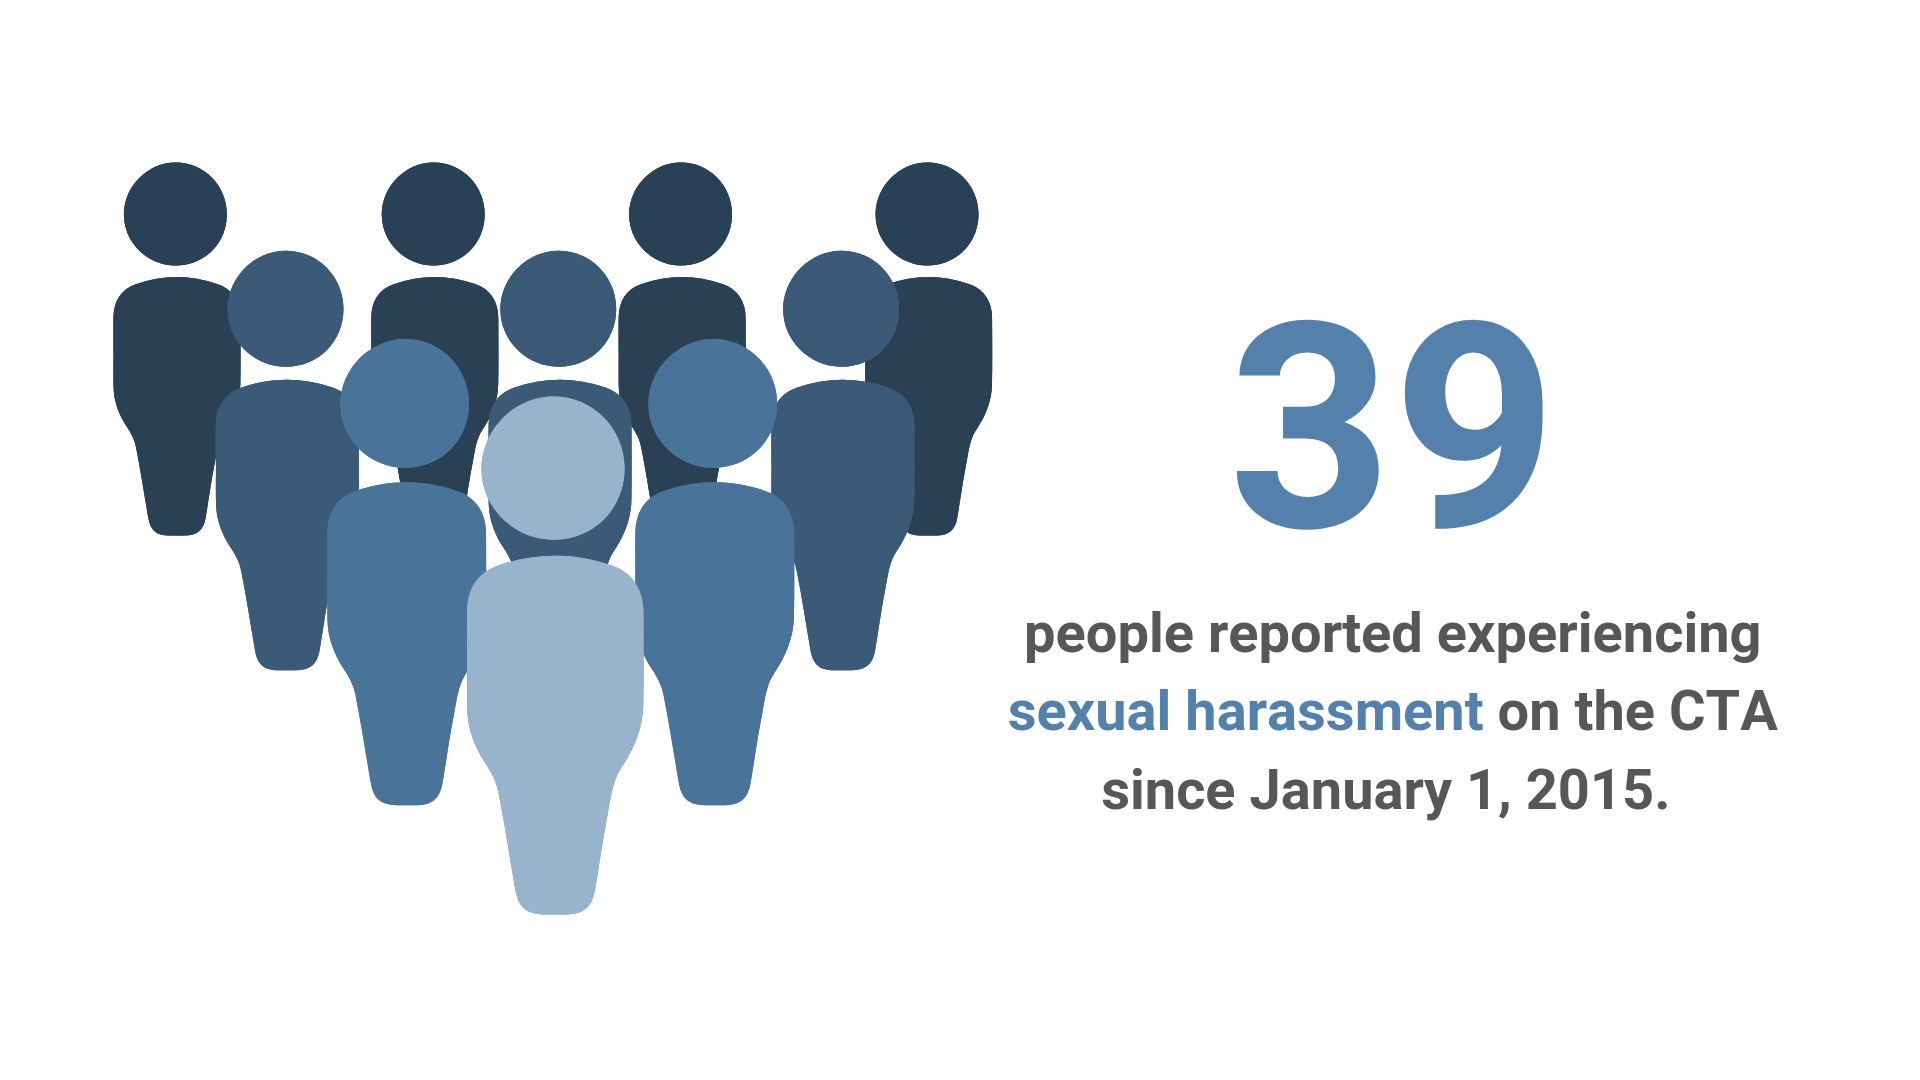 39 people reported experiencing sexual harassment on the CTA.